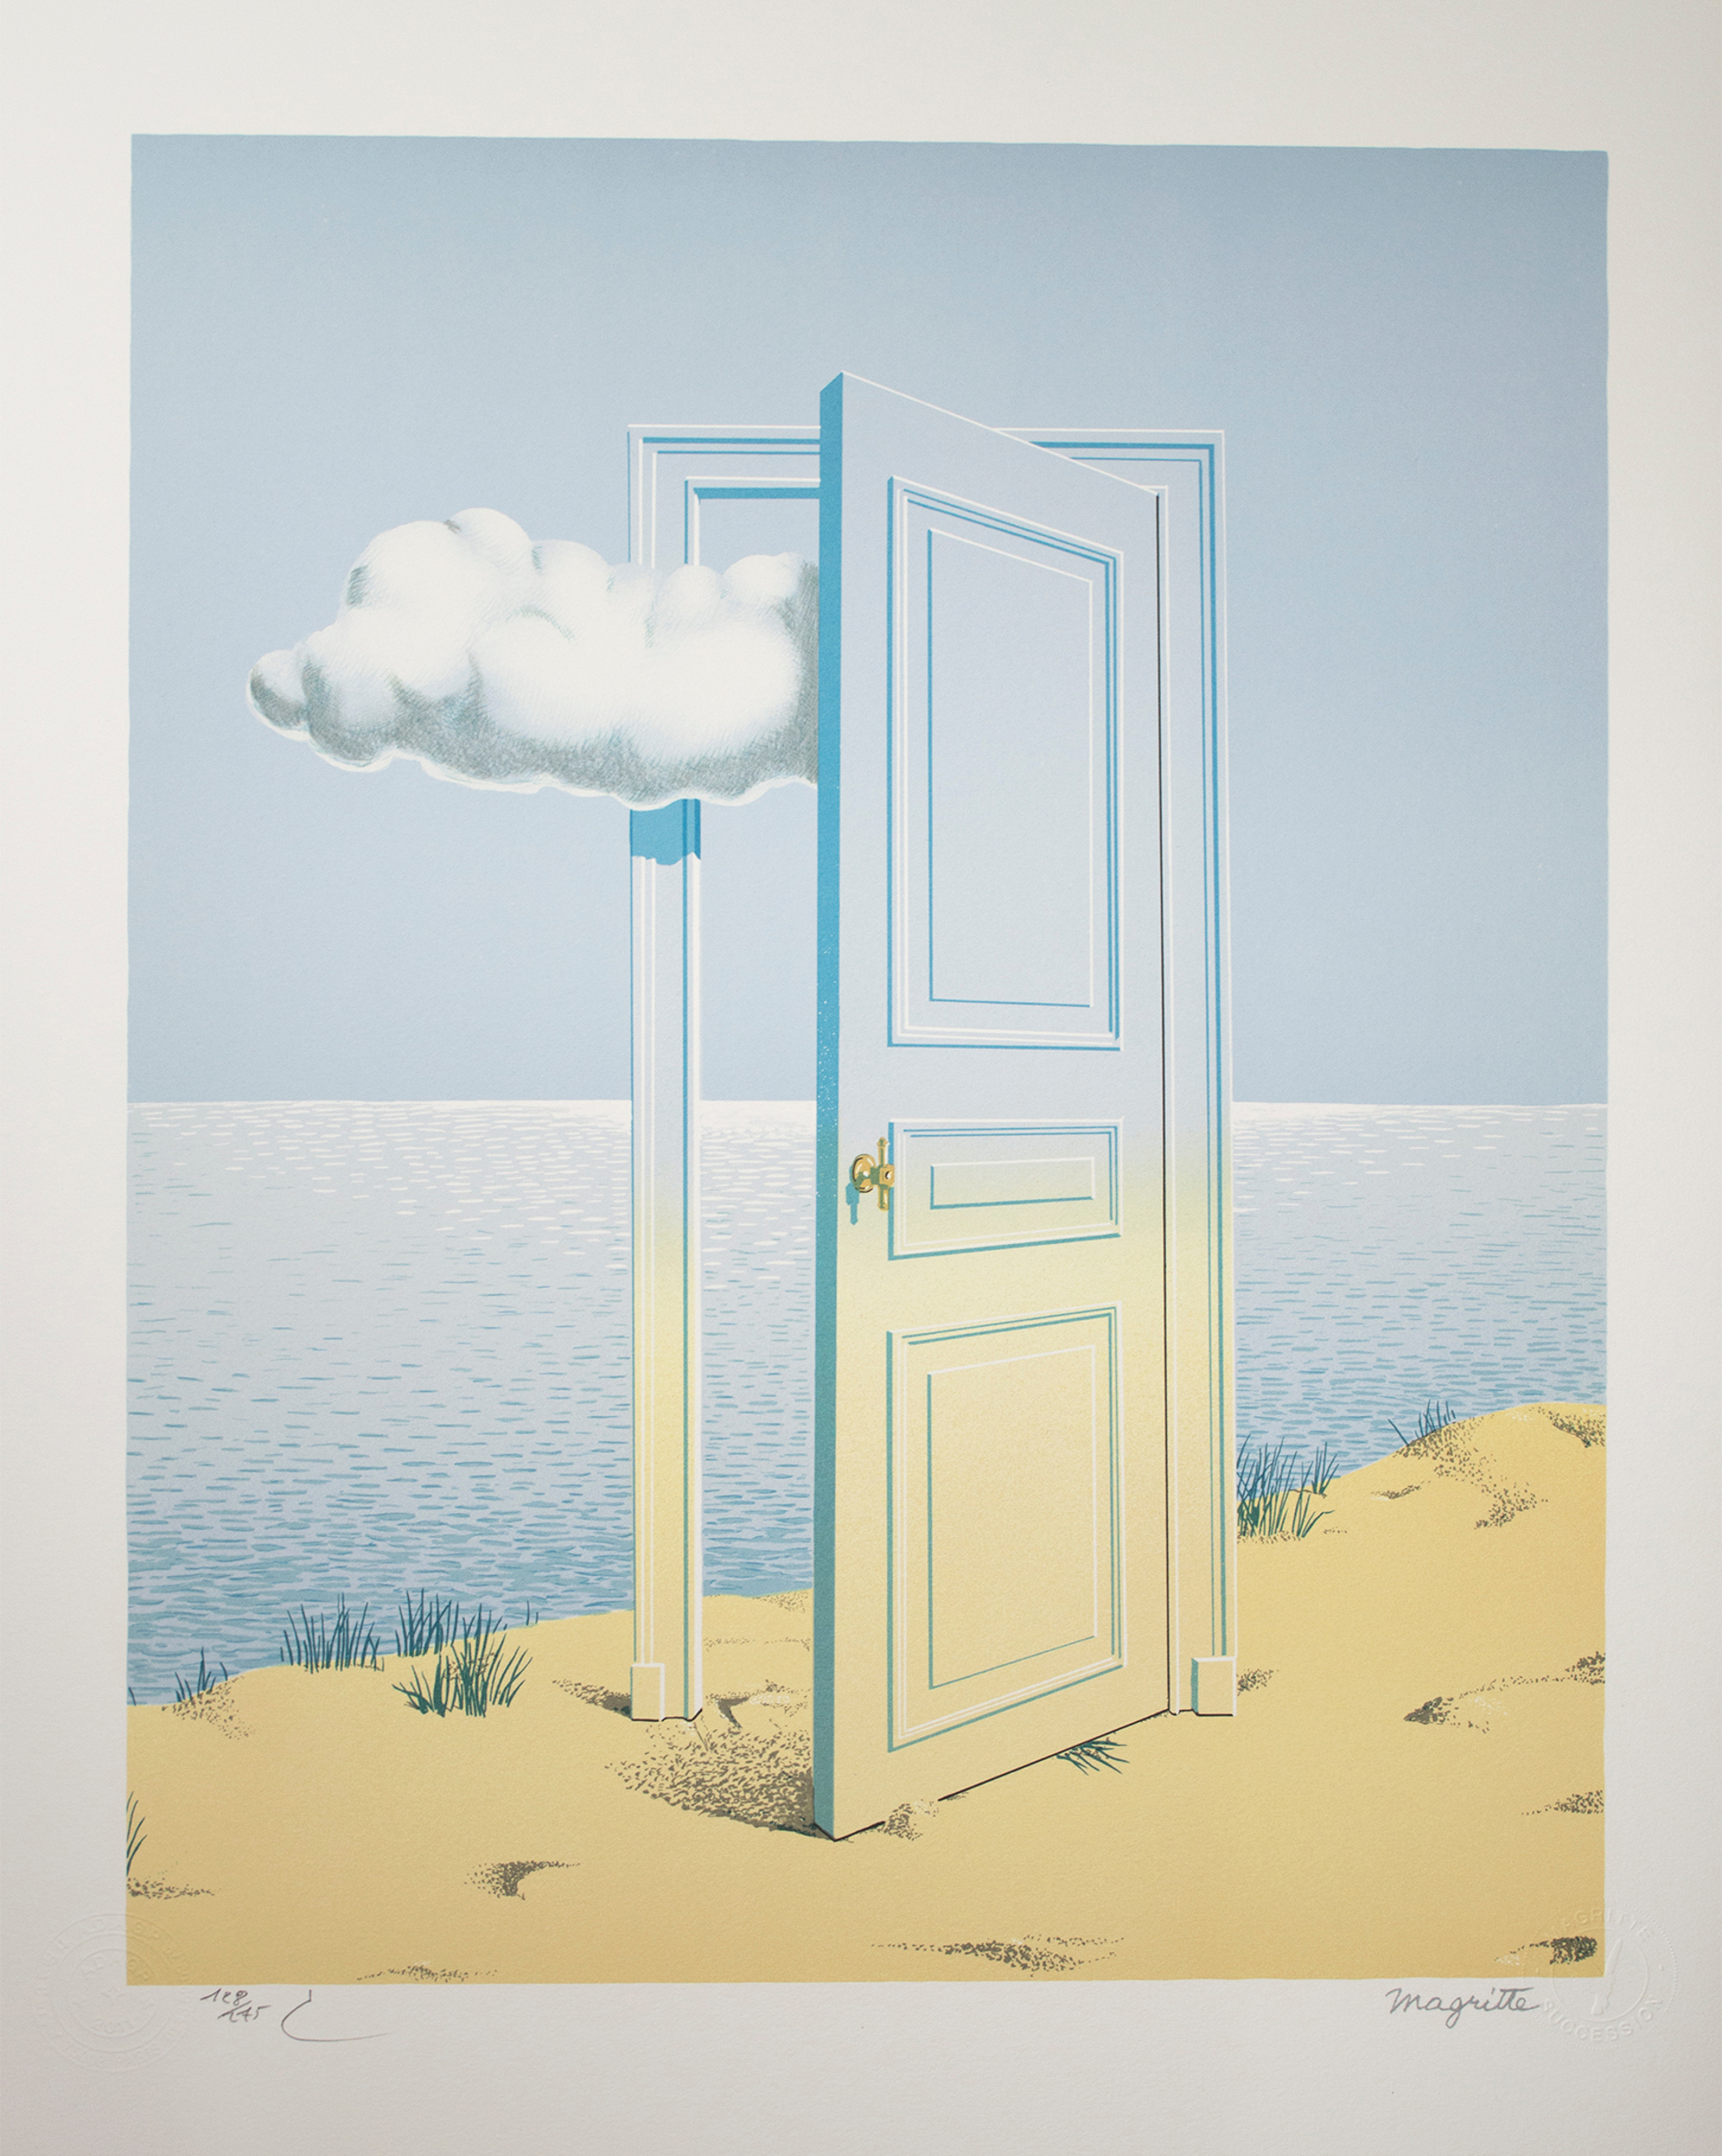 La Victoire (Victory) by Rene Magritte